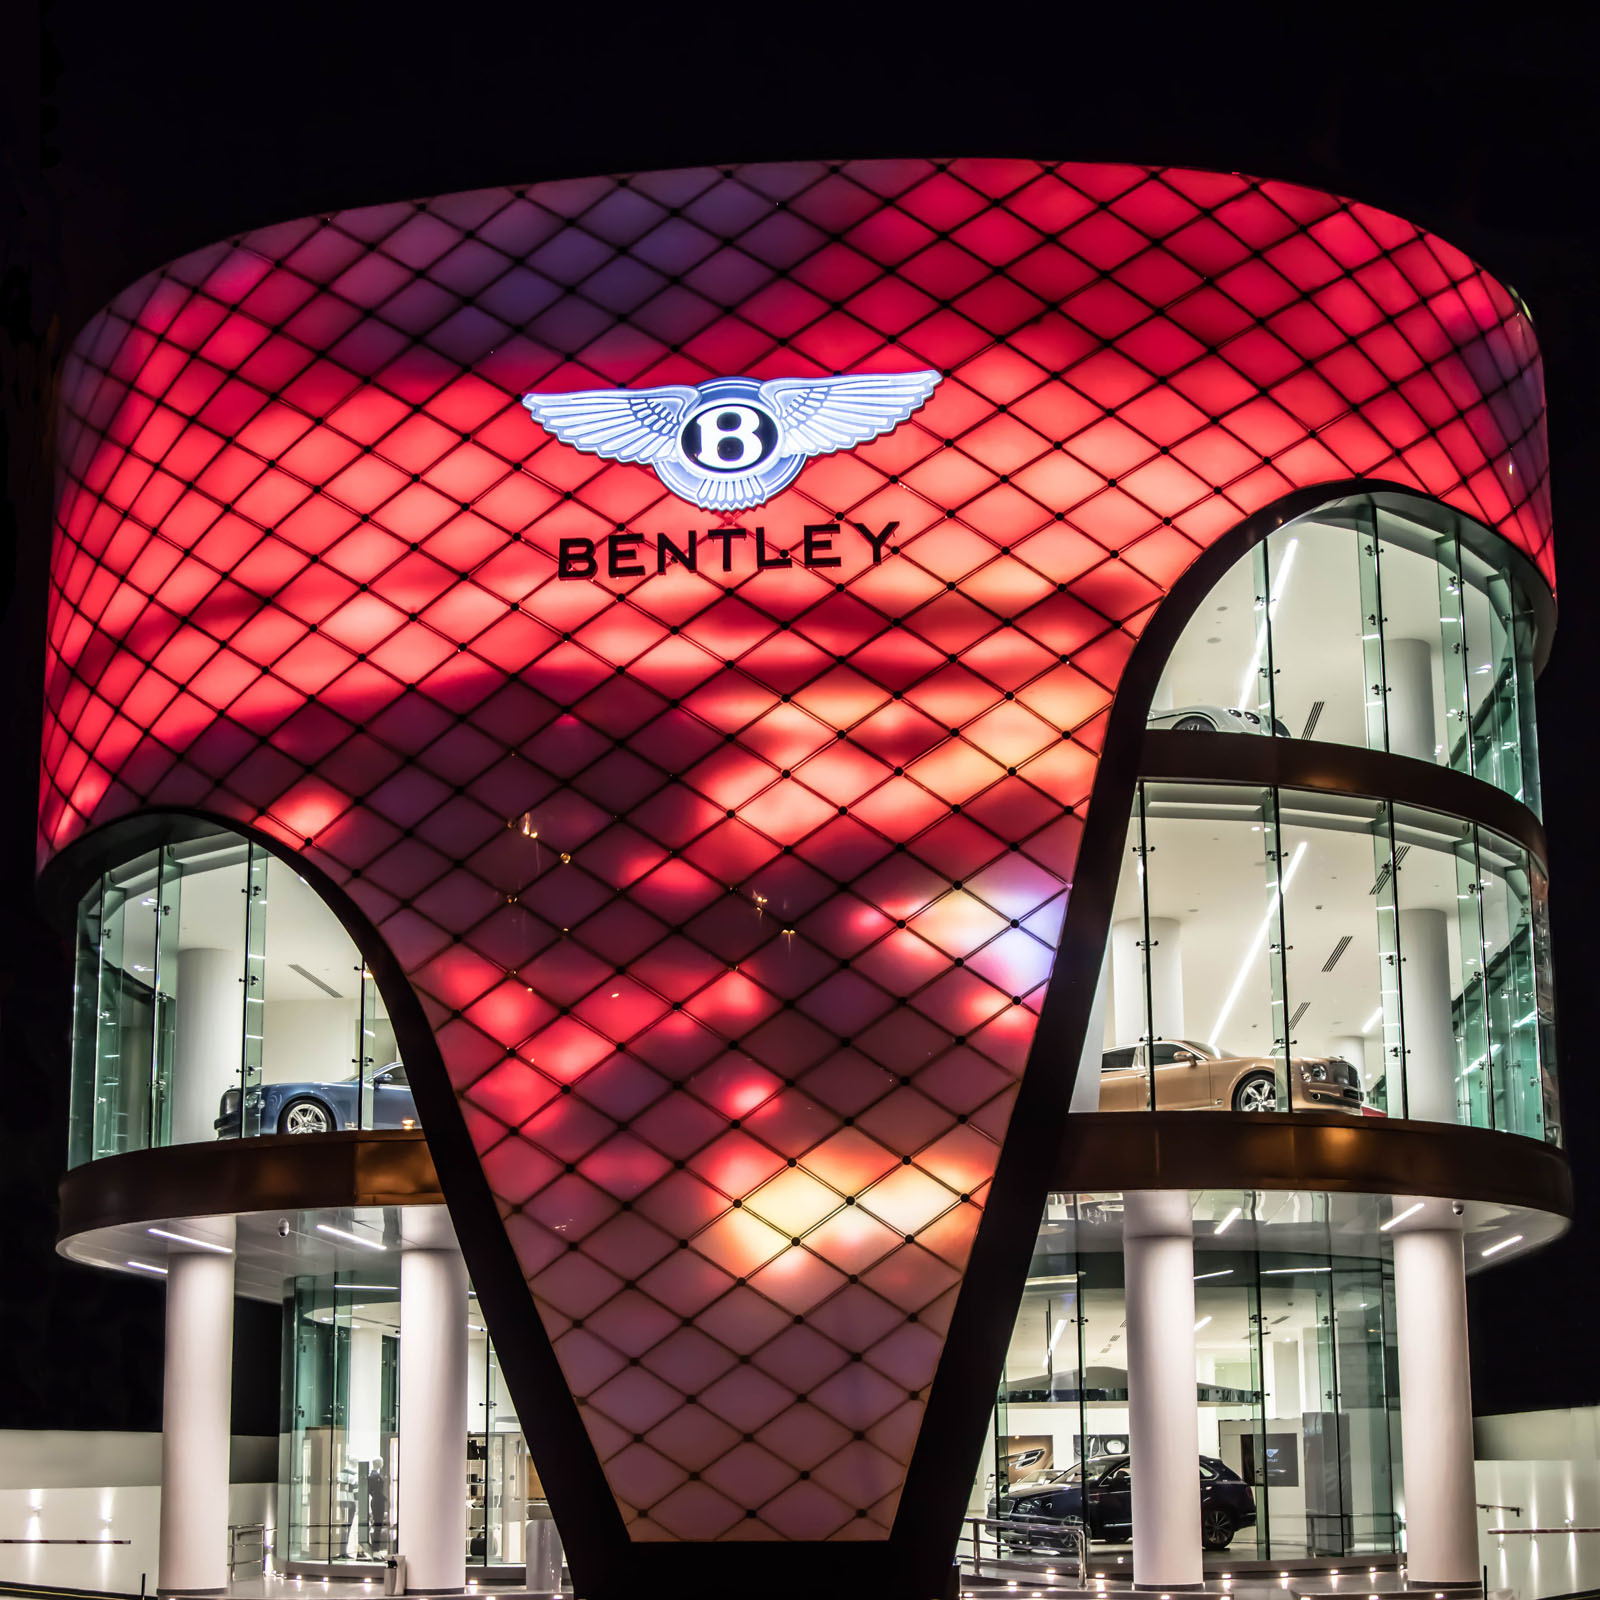 Bentley Dealerships: World's Largest Bentley Dealership Opens In... You Guessed